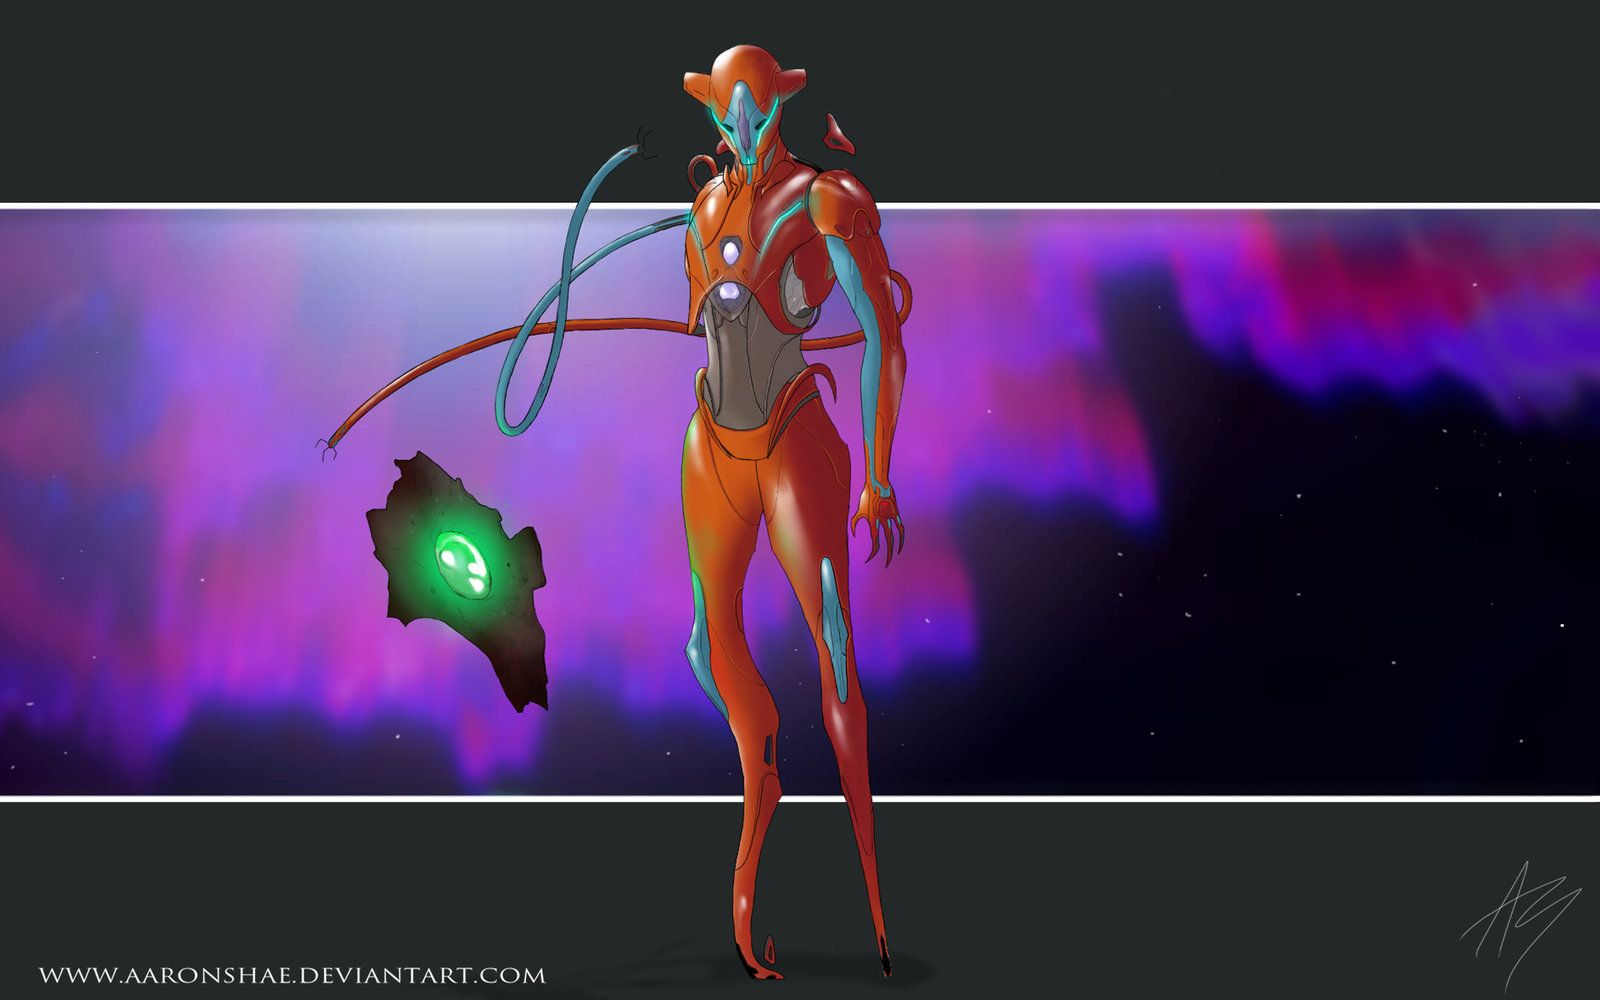 Pokemon mega deoxys images pokemon images - For The Link Group Realistic Deoxys Redo